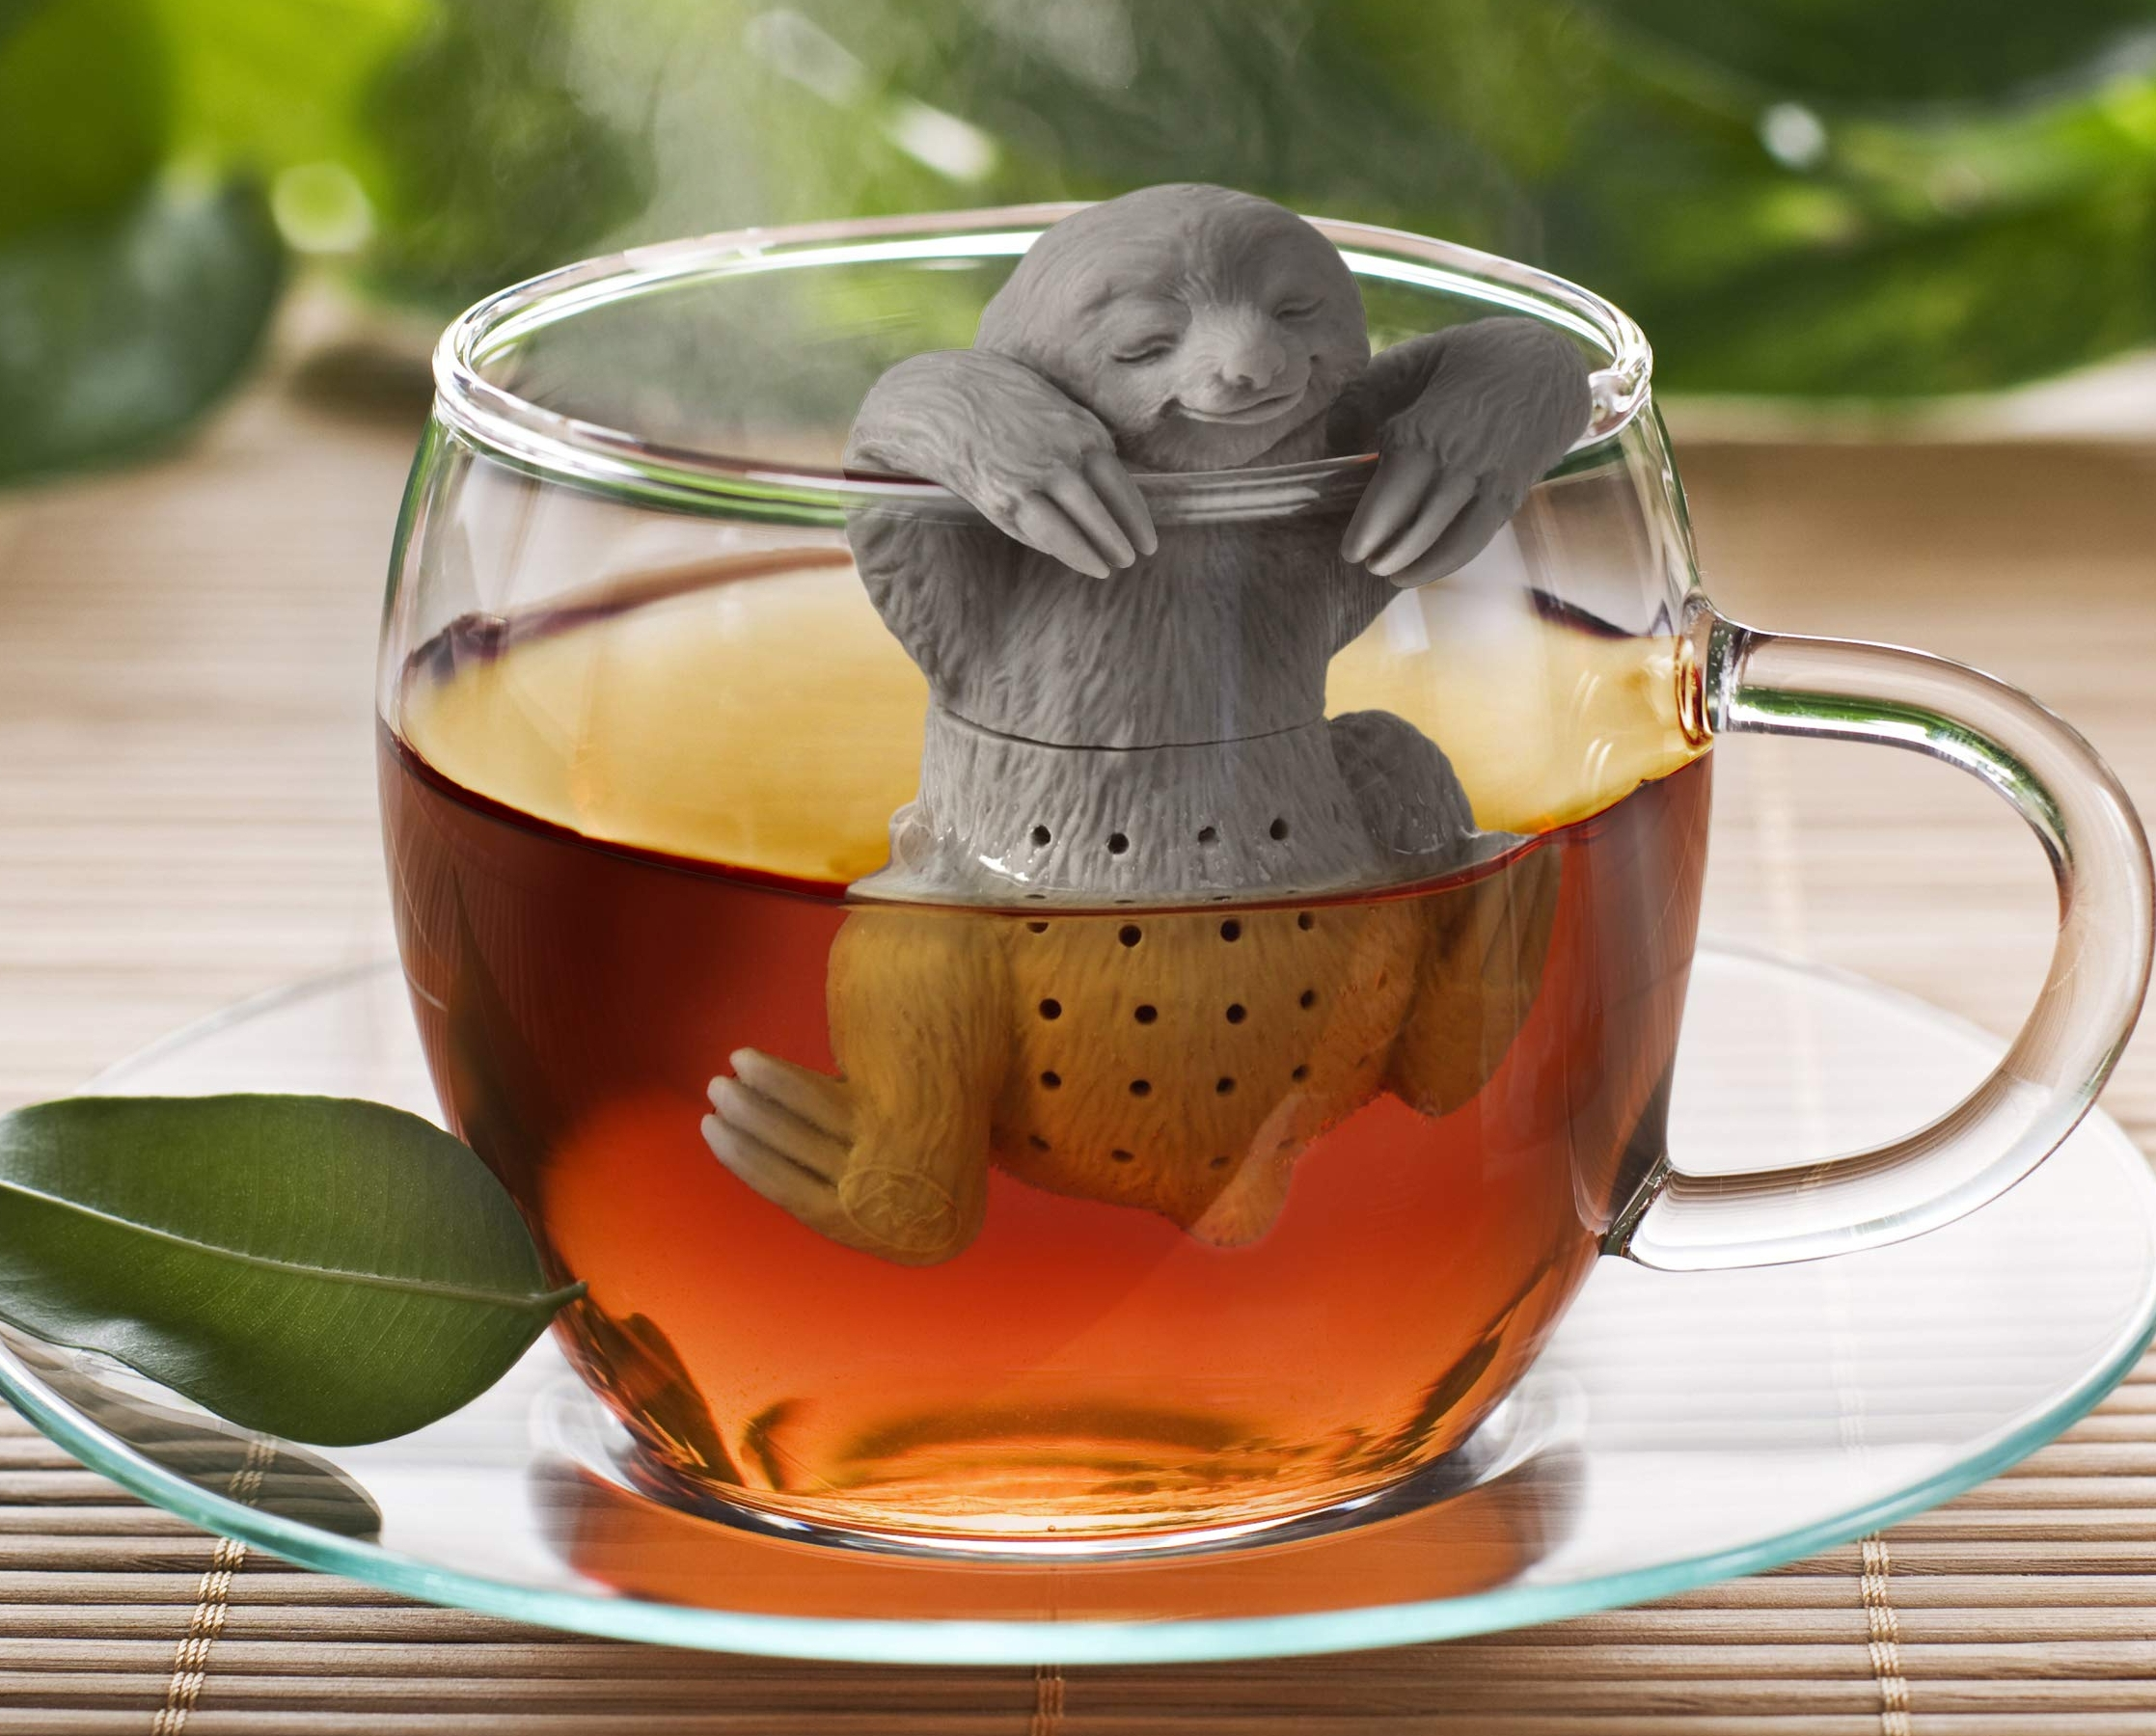 Sloth tea infuser by Fred and Friends